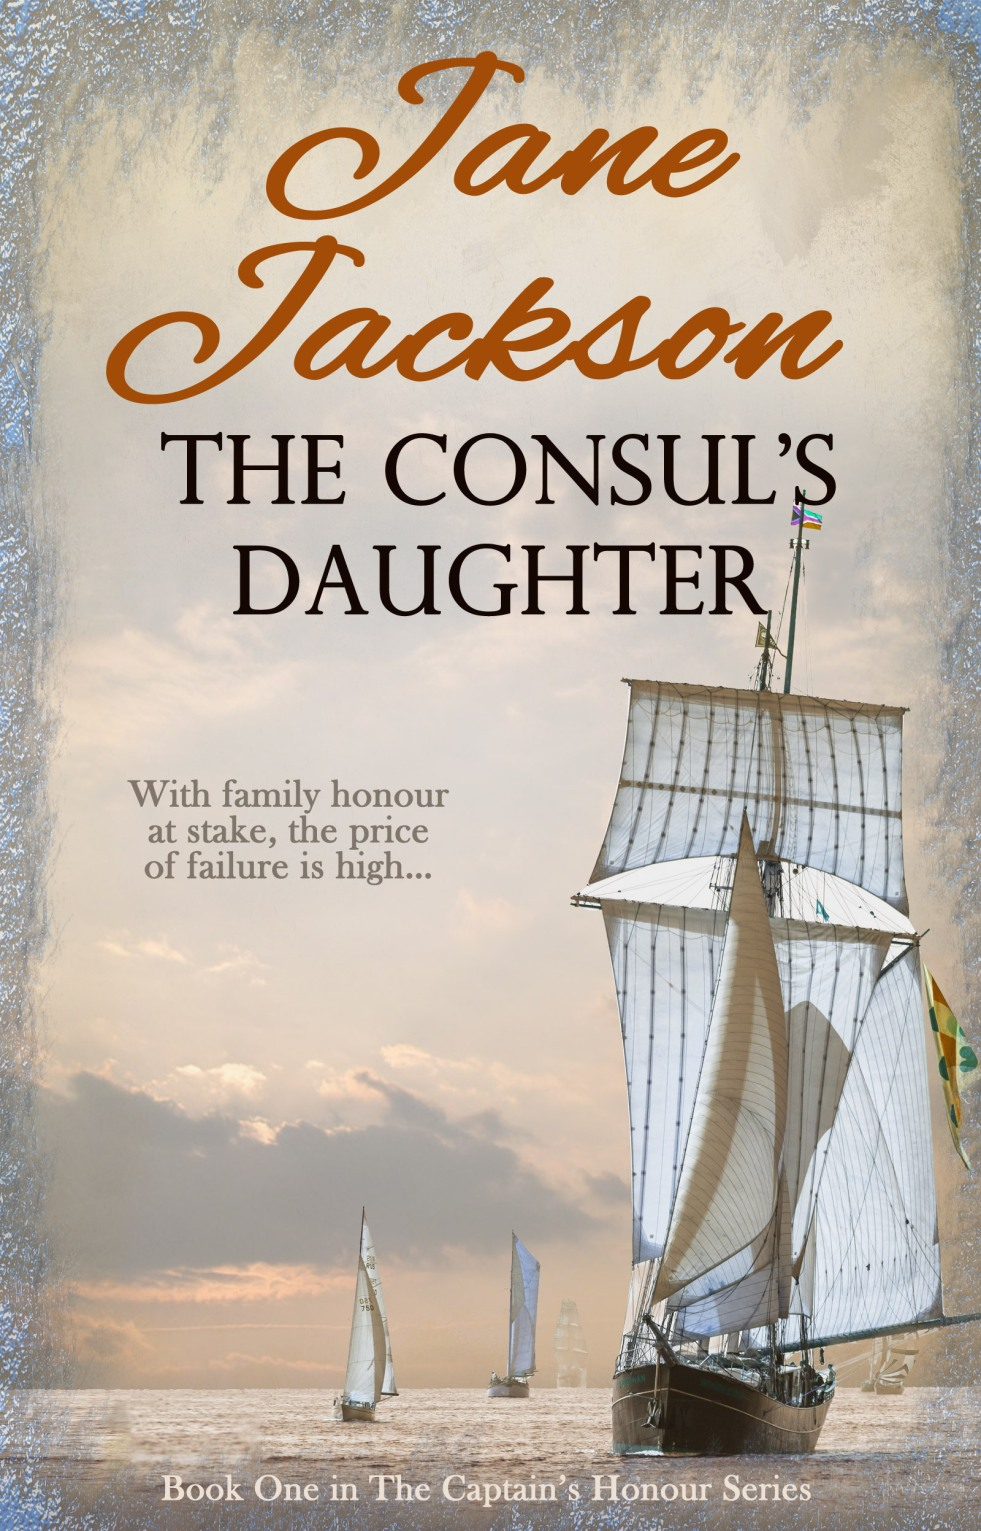 jane jackson, helena fairfax, the consul's daughter